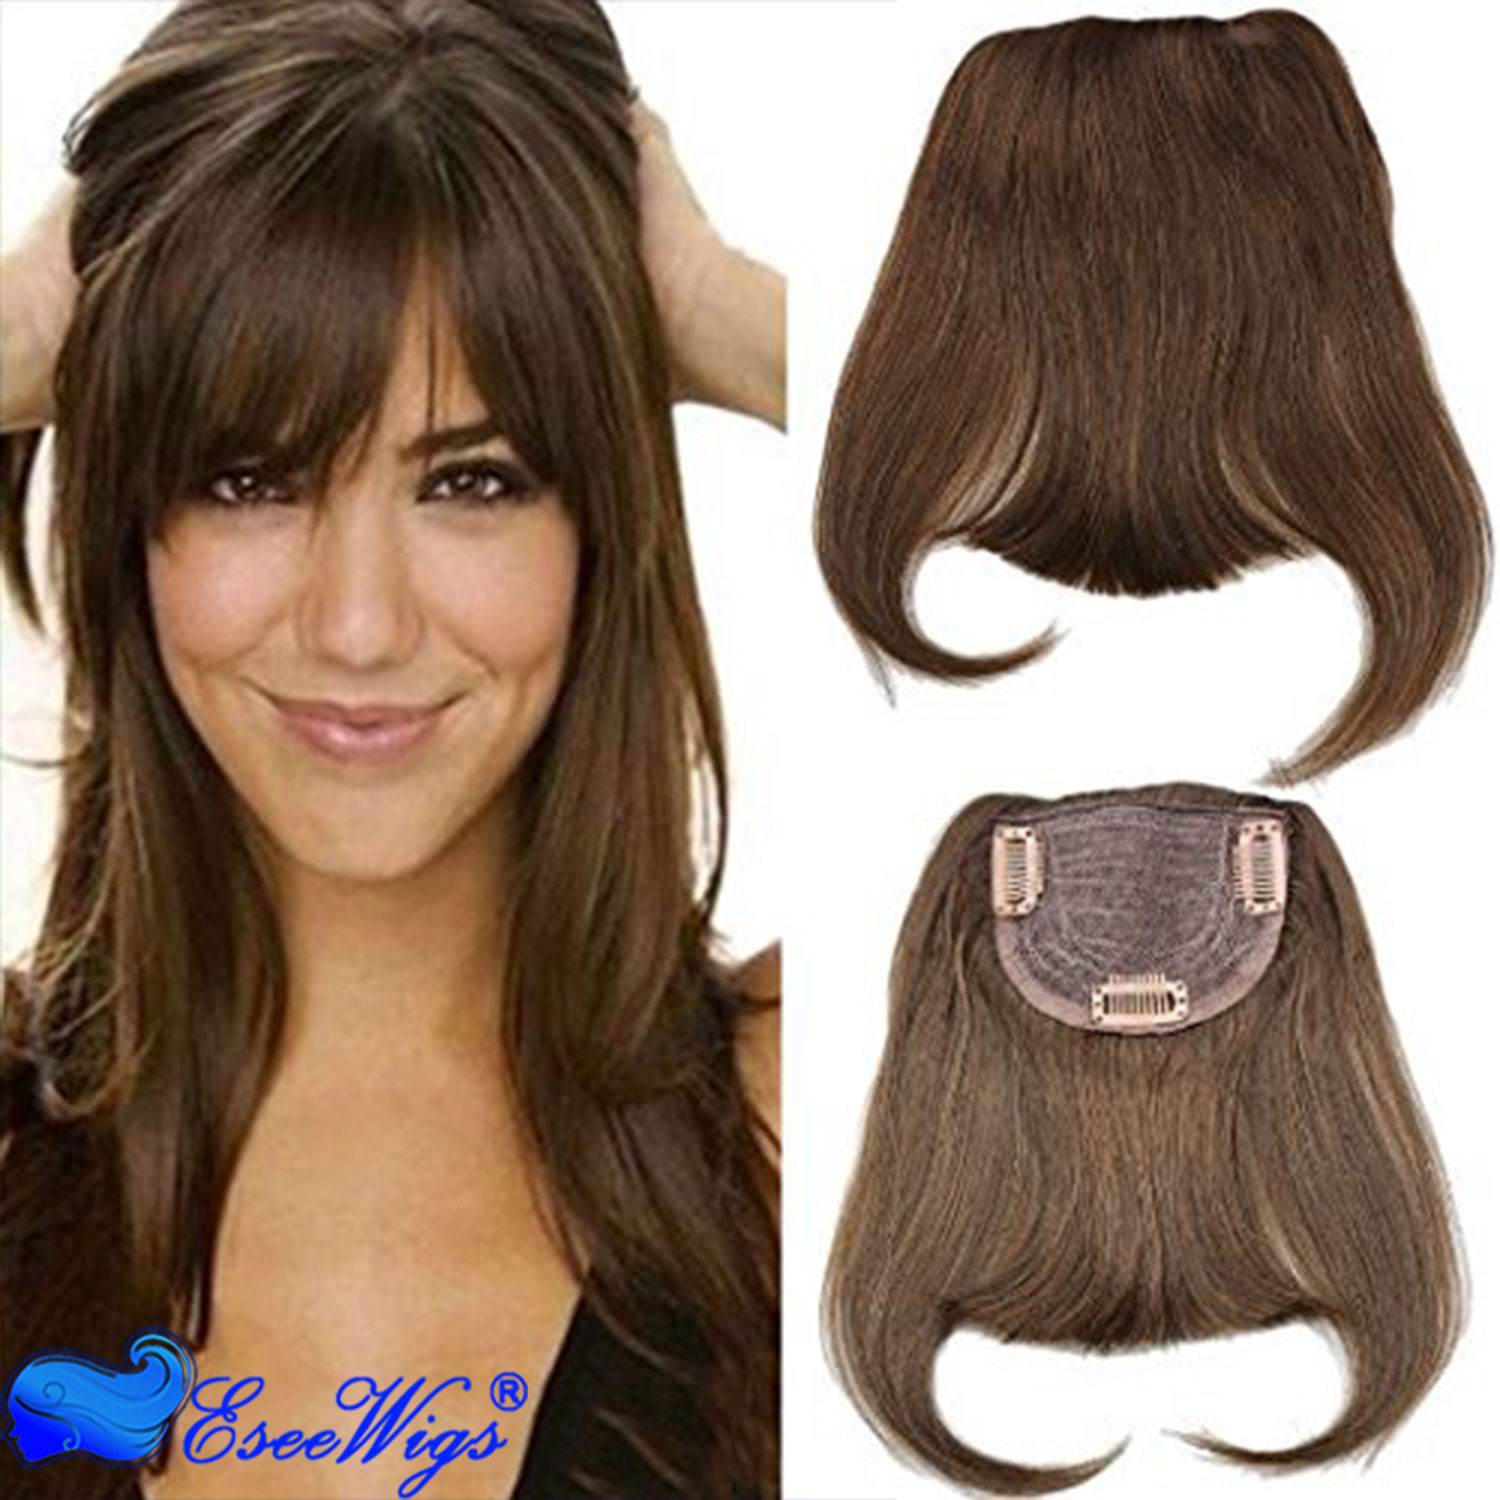 100 Human Hair Bangs Extensions Straight European Hair Machine Weft